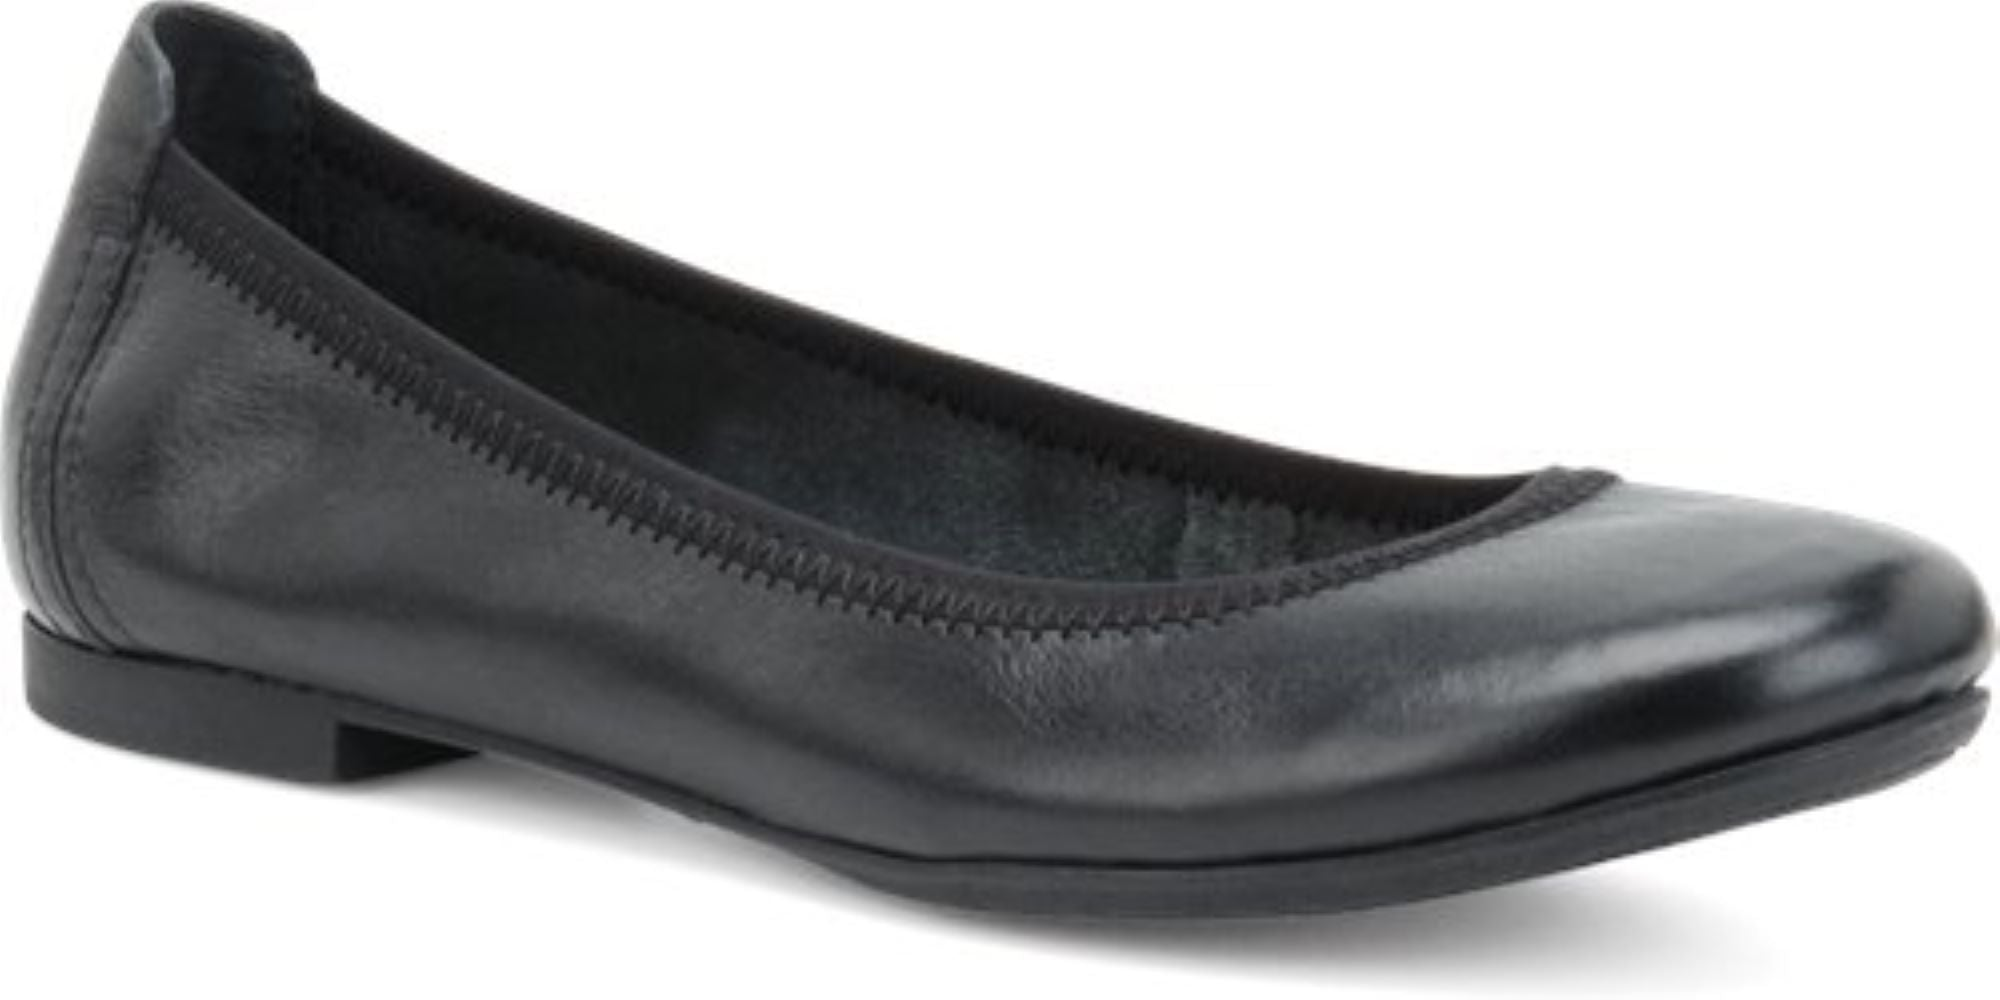 'Born' Women's Julianne Slip On - Black